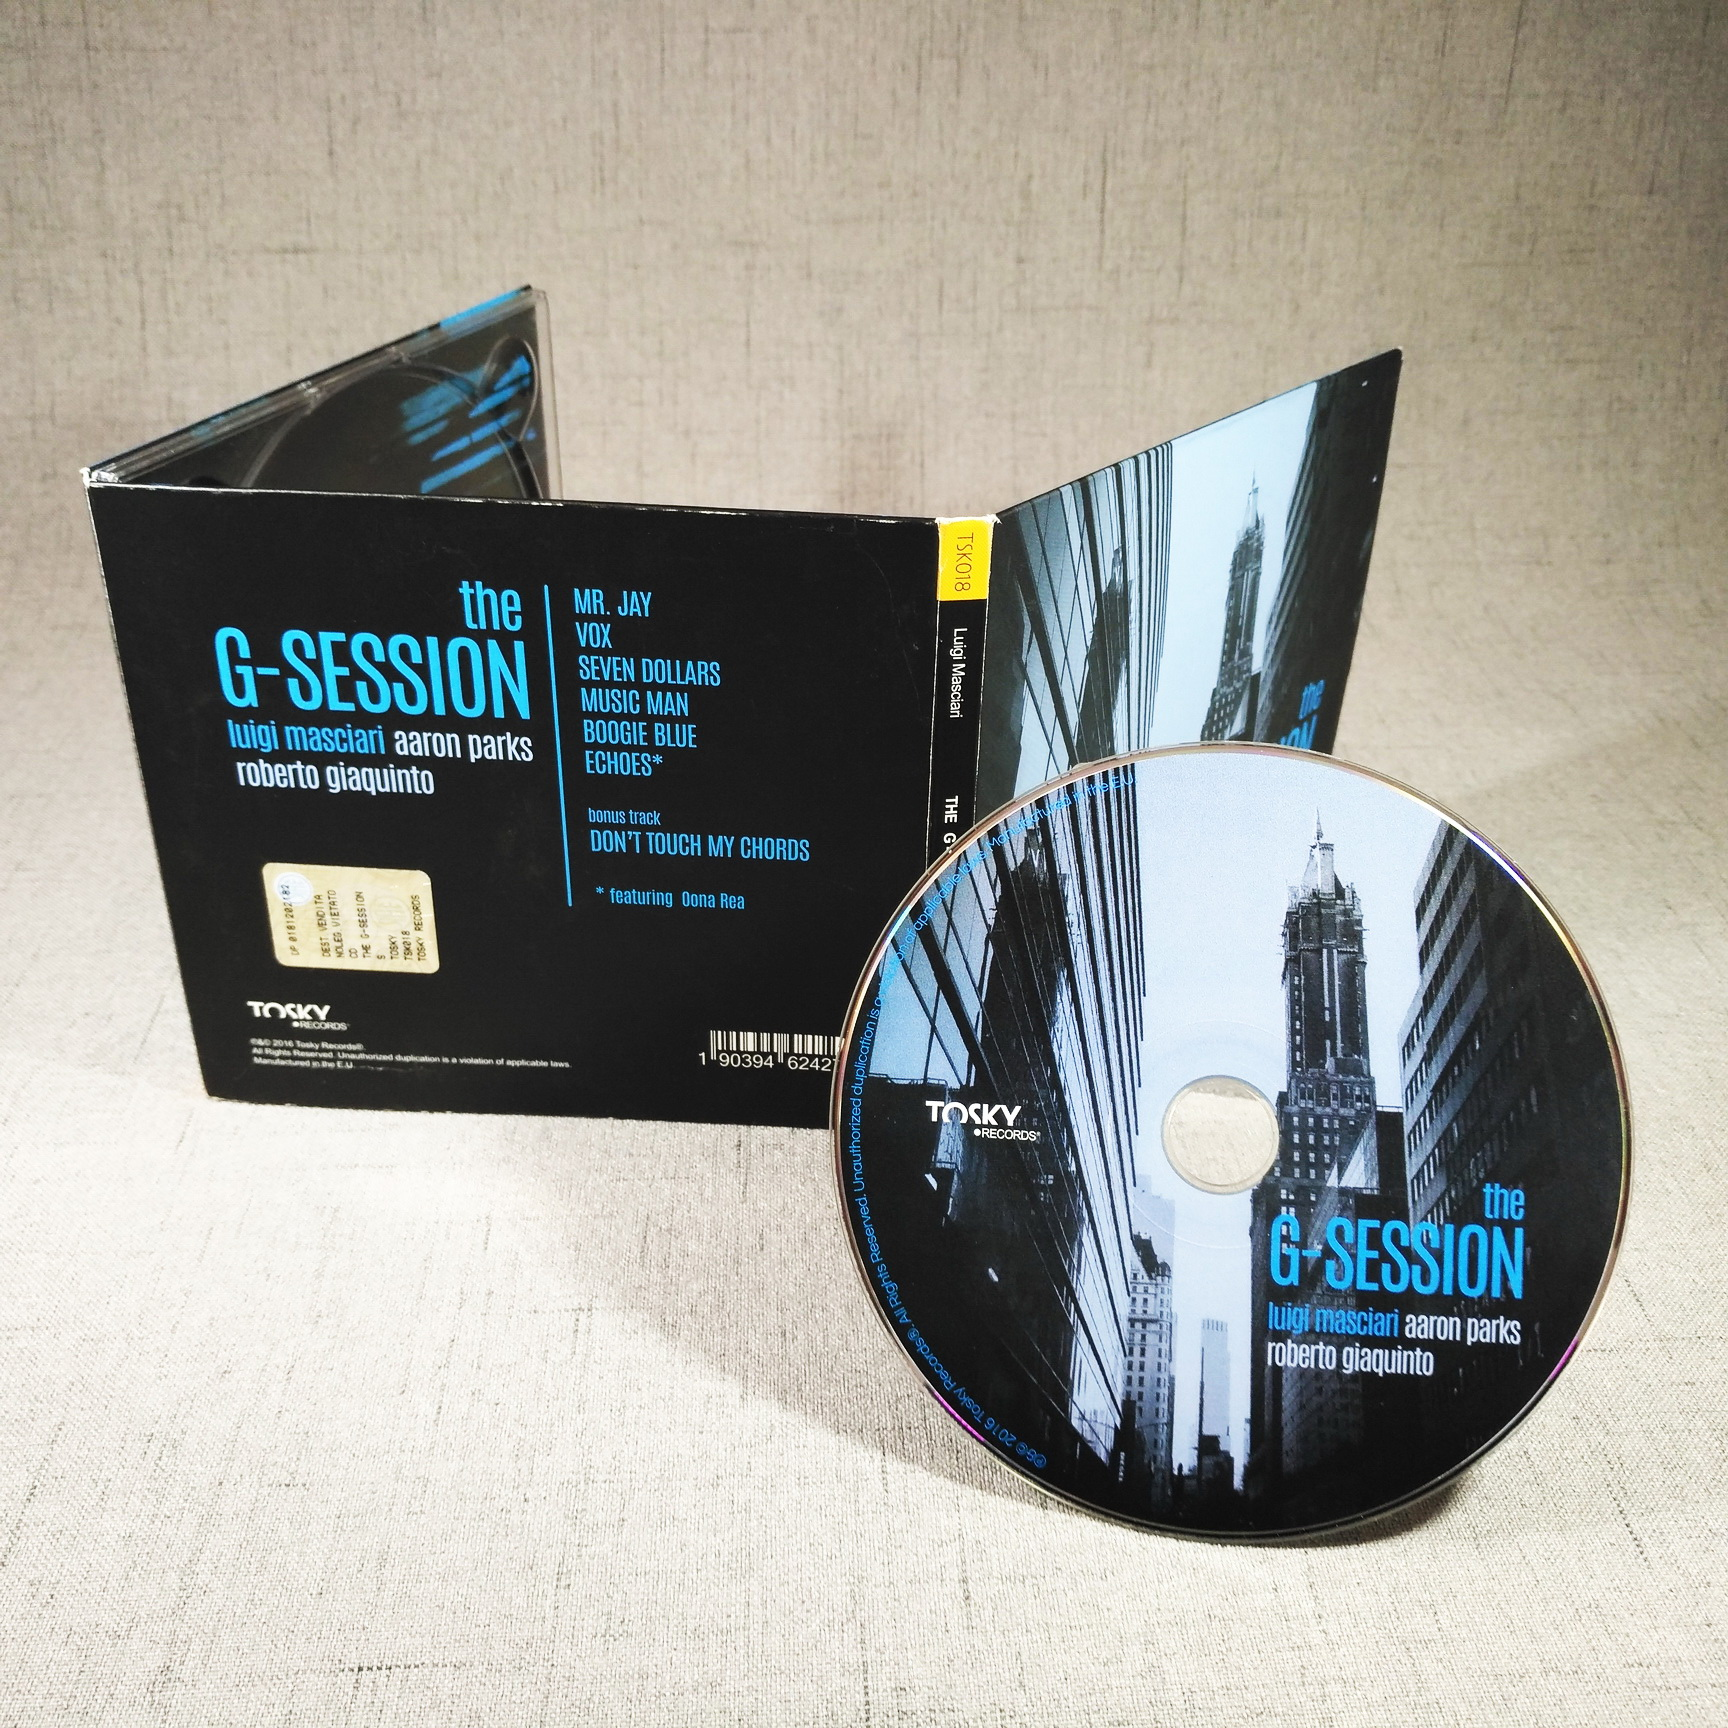 Cds Dvds In Eco Friendly Digipaks Vinyl Record Pressing